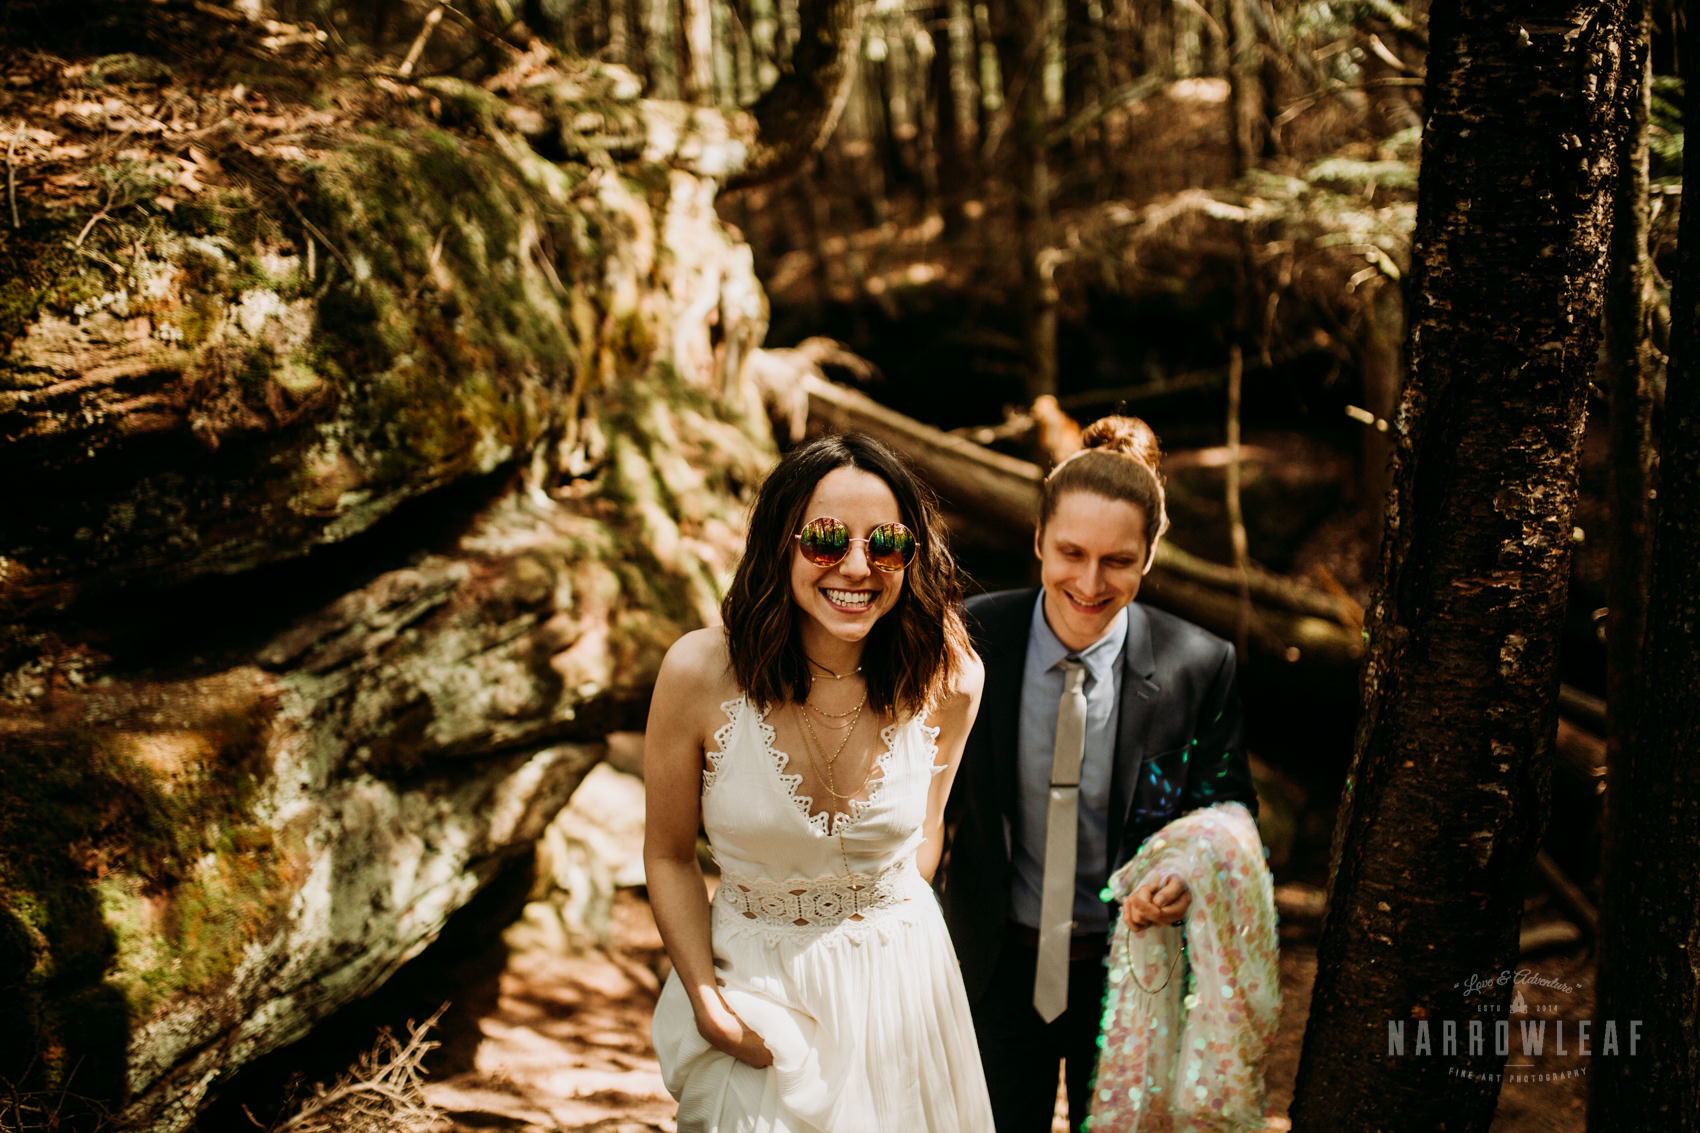 bayfield-wisconsin-elopement-in-the-woods-Narrowleaf_Love_and_Adventure_Photography.jpg